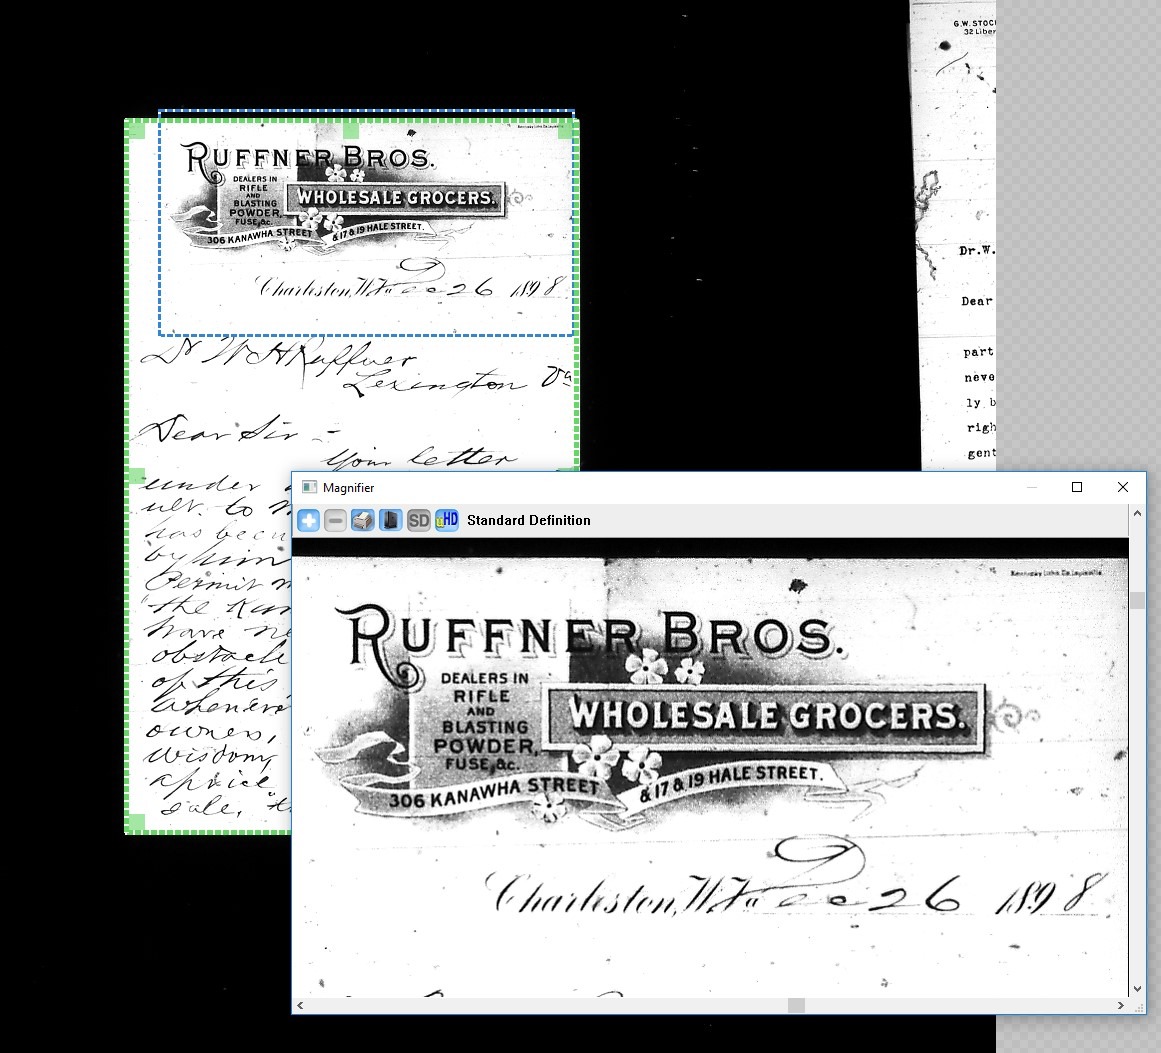 Screenshot of ScanPro software, showing historical letter with enlarged picture of letterhead of the Ruffner Bros. Wholesale Grocers